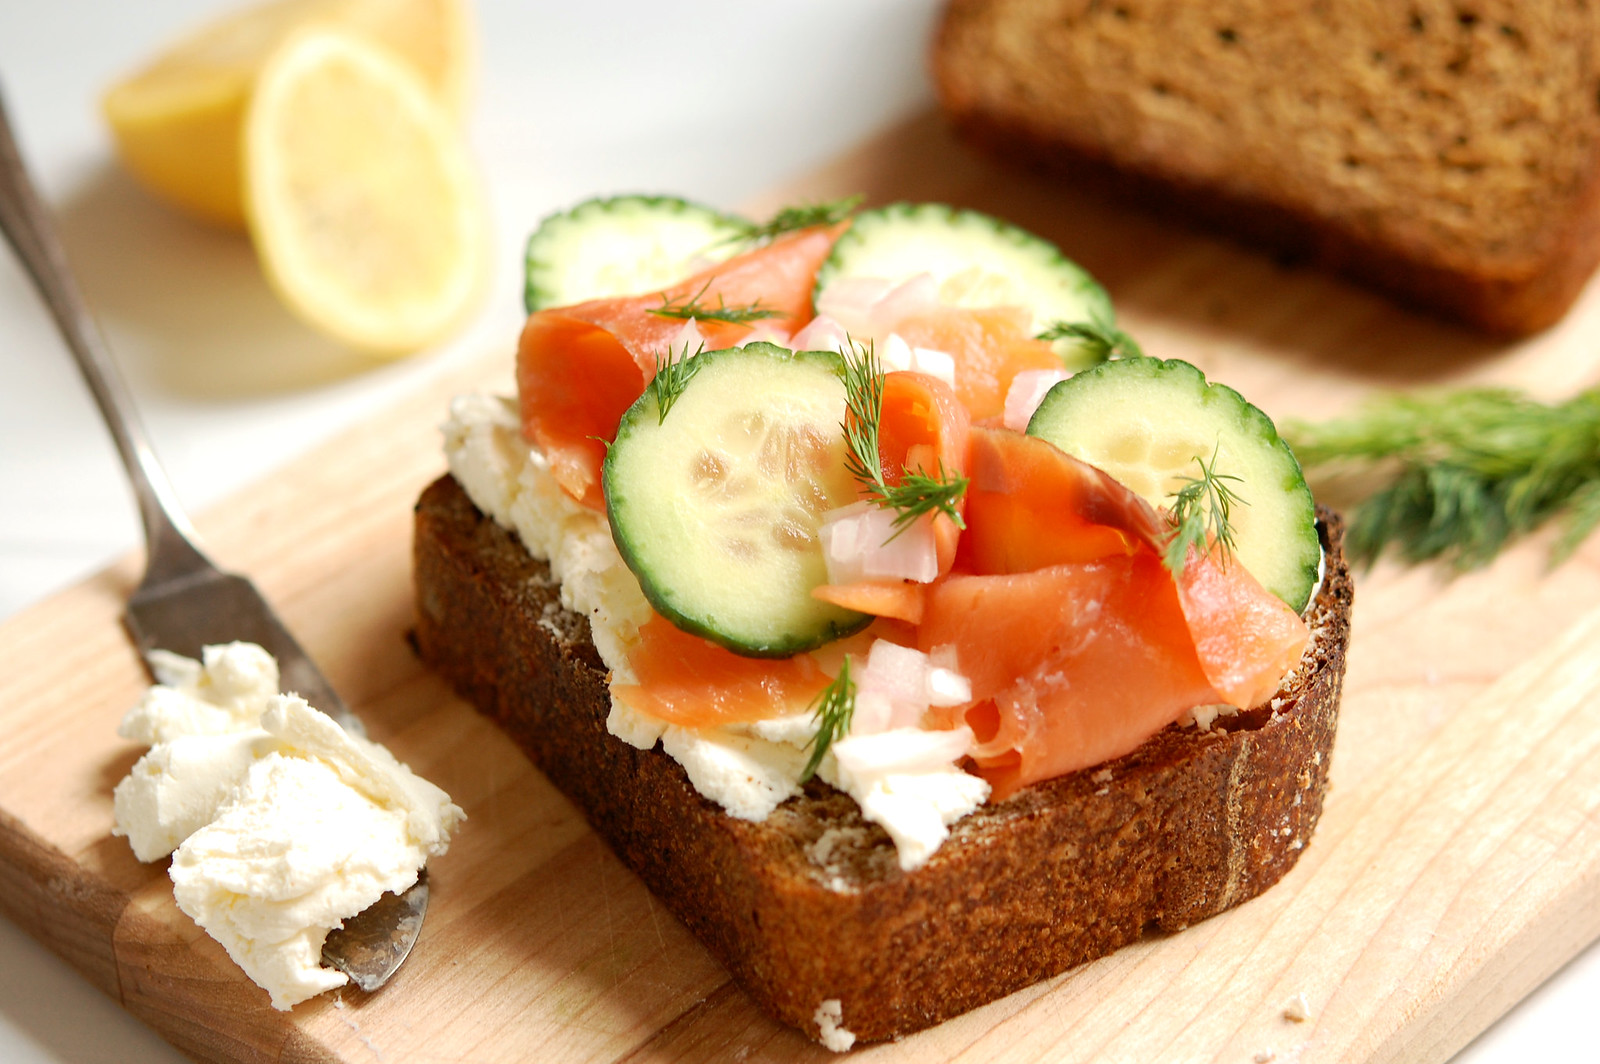 cured cured salmon cucumber smorrebrod toast on wooden board with garnishes cucumber smorrebrod toast on wooden board with garmishes